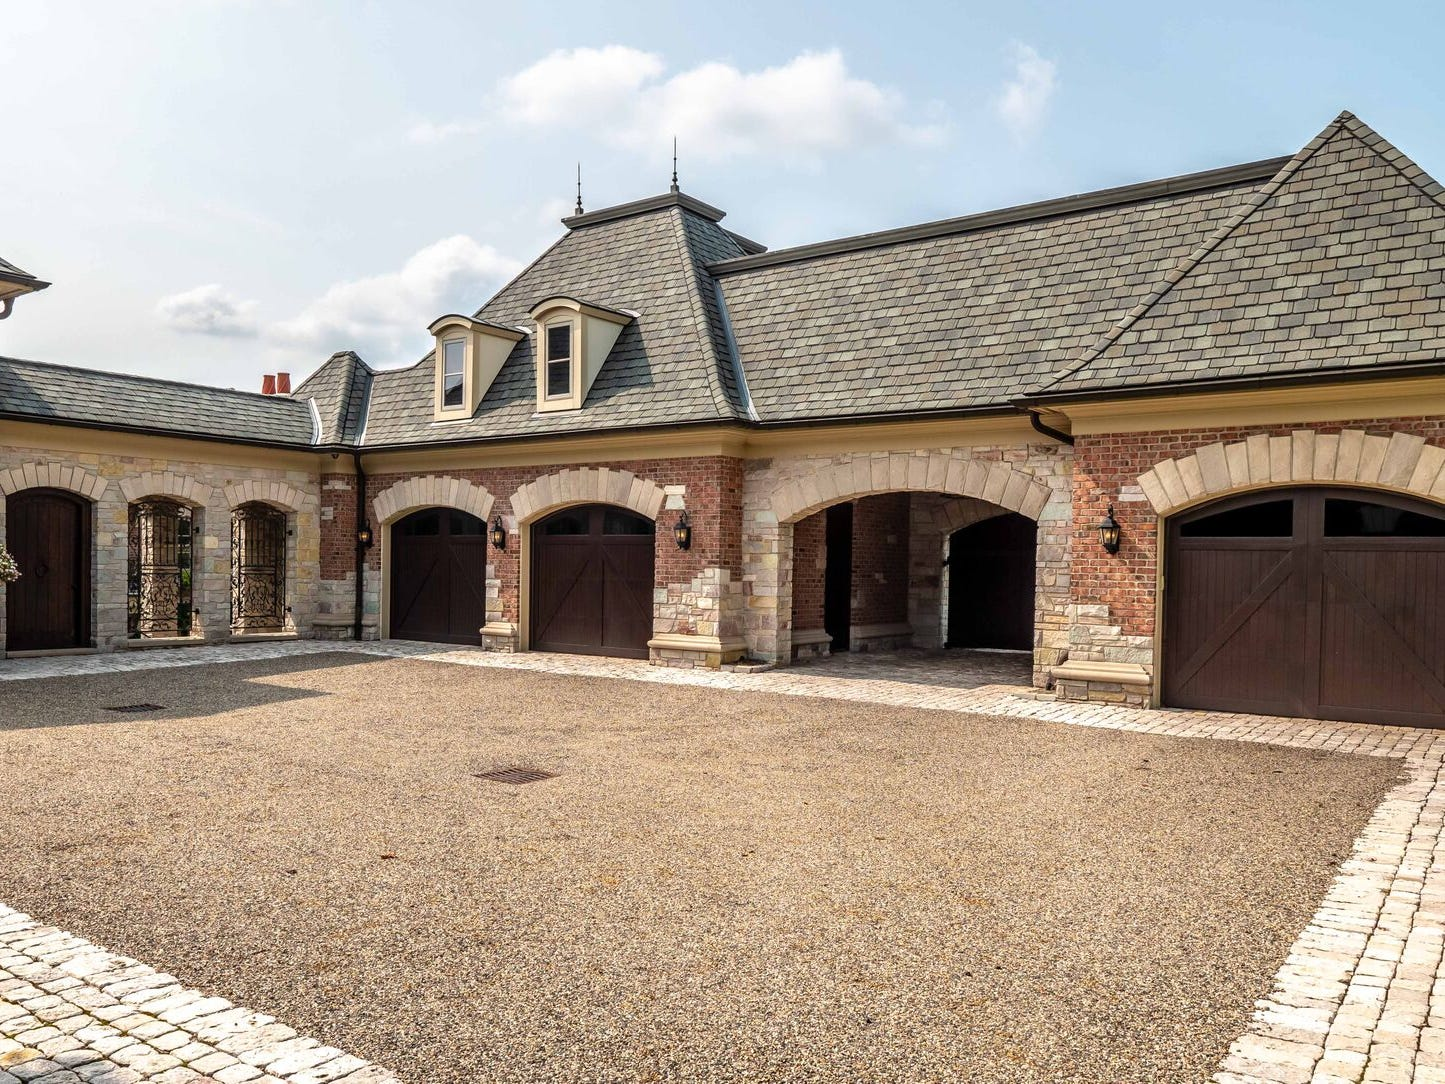 The eight car garage features its own car wash.